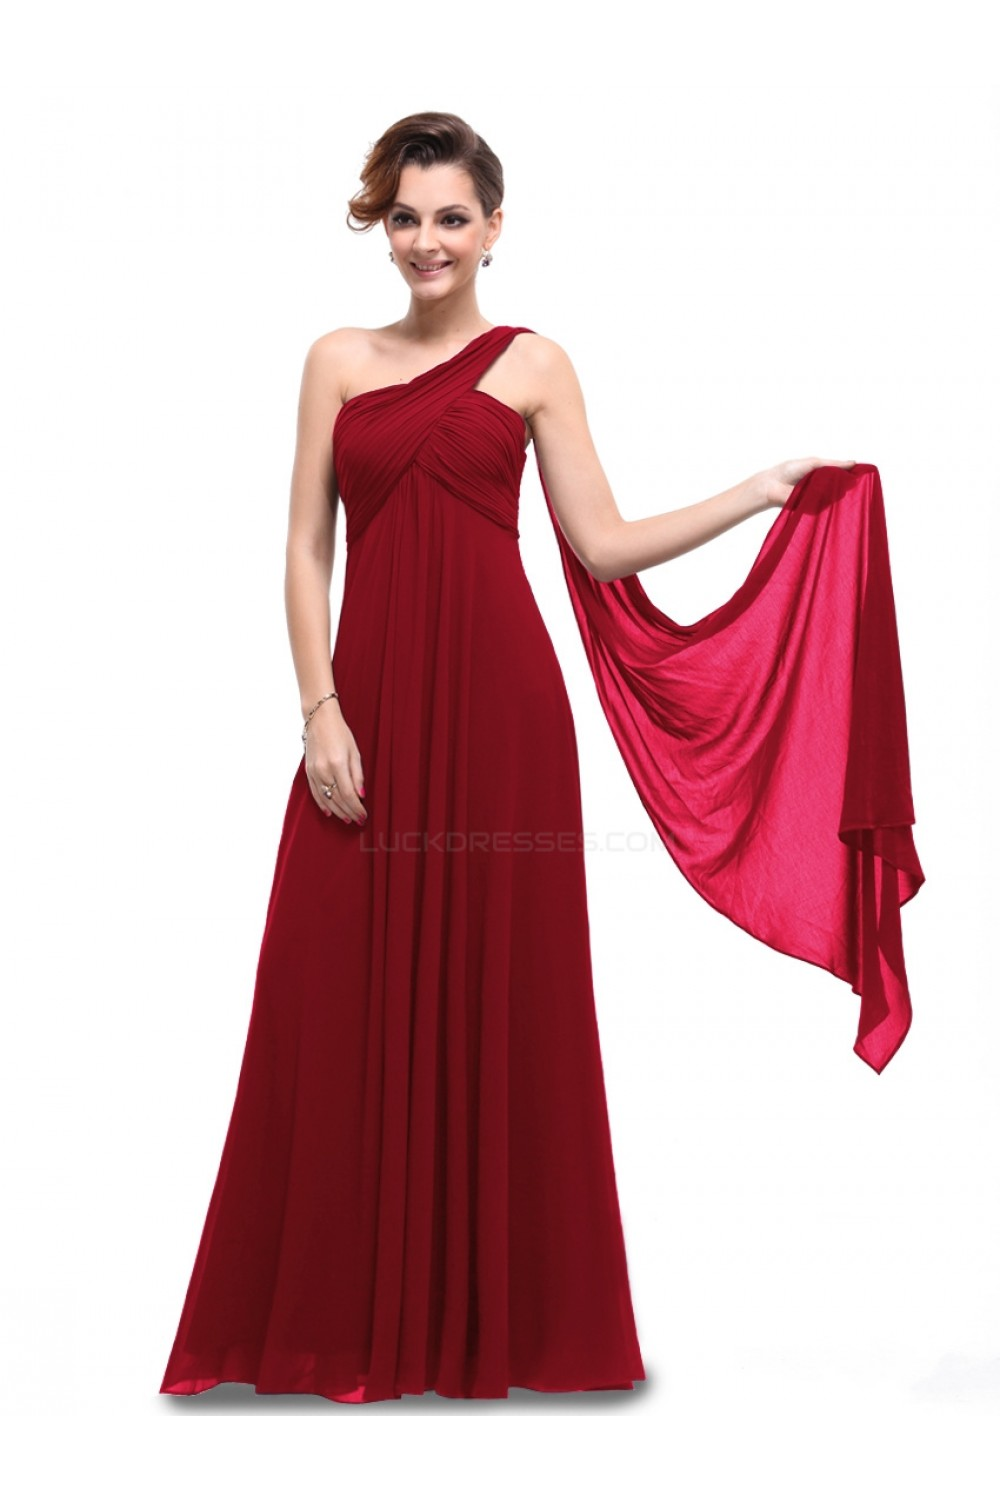 One shoulder long burgundy chiffon bridesmaid dressesevening empire one shoulder long burgundy chiffon bridesmaid dressesevening dressesmaternity dresses bd010296 ombrellifo Gallery